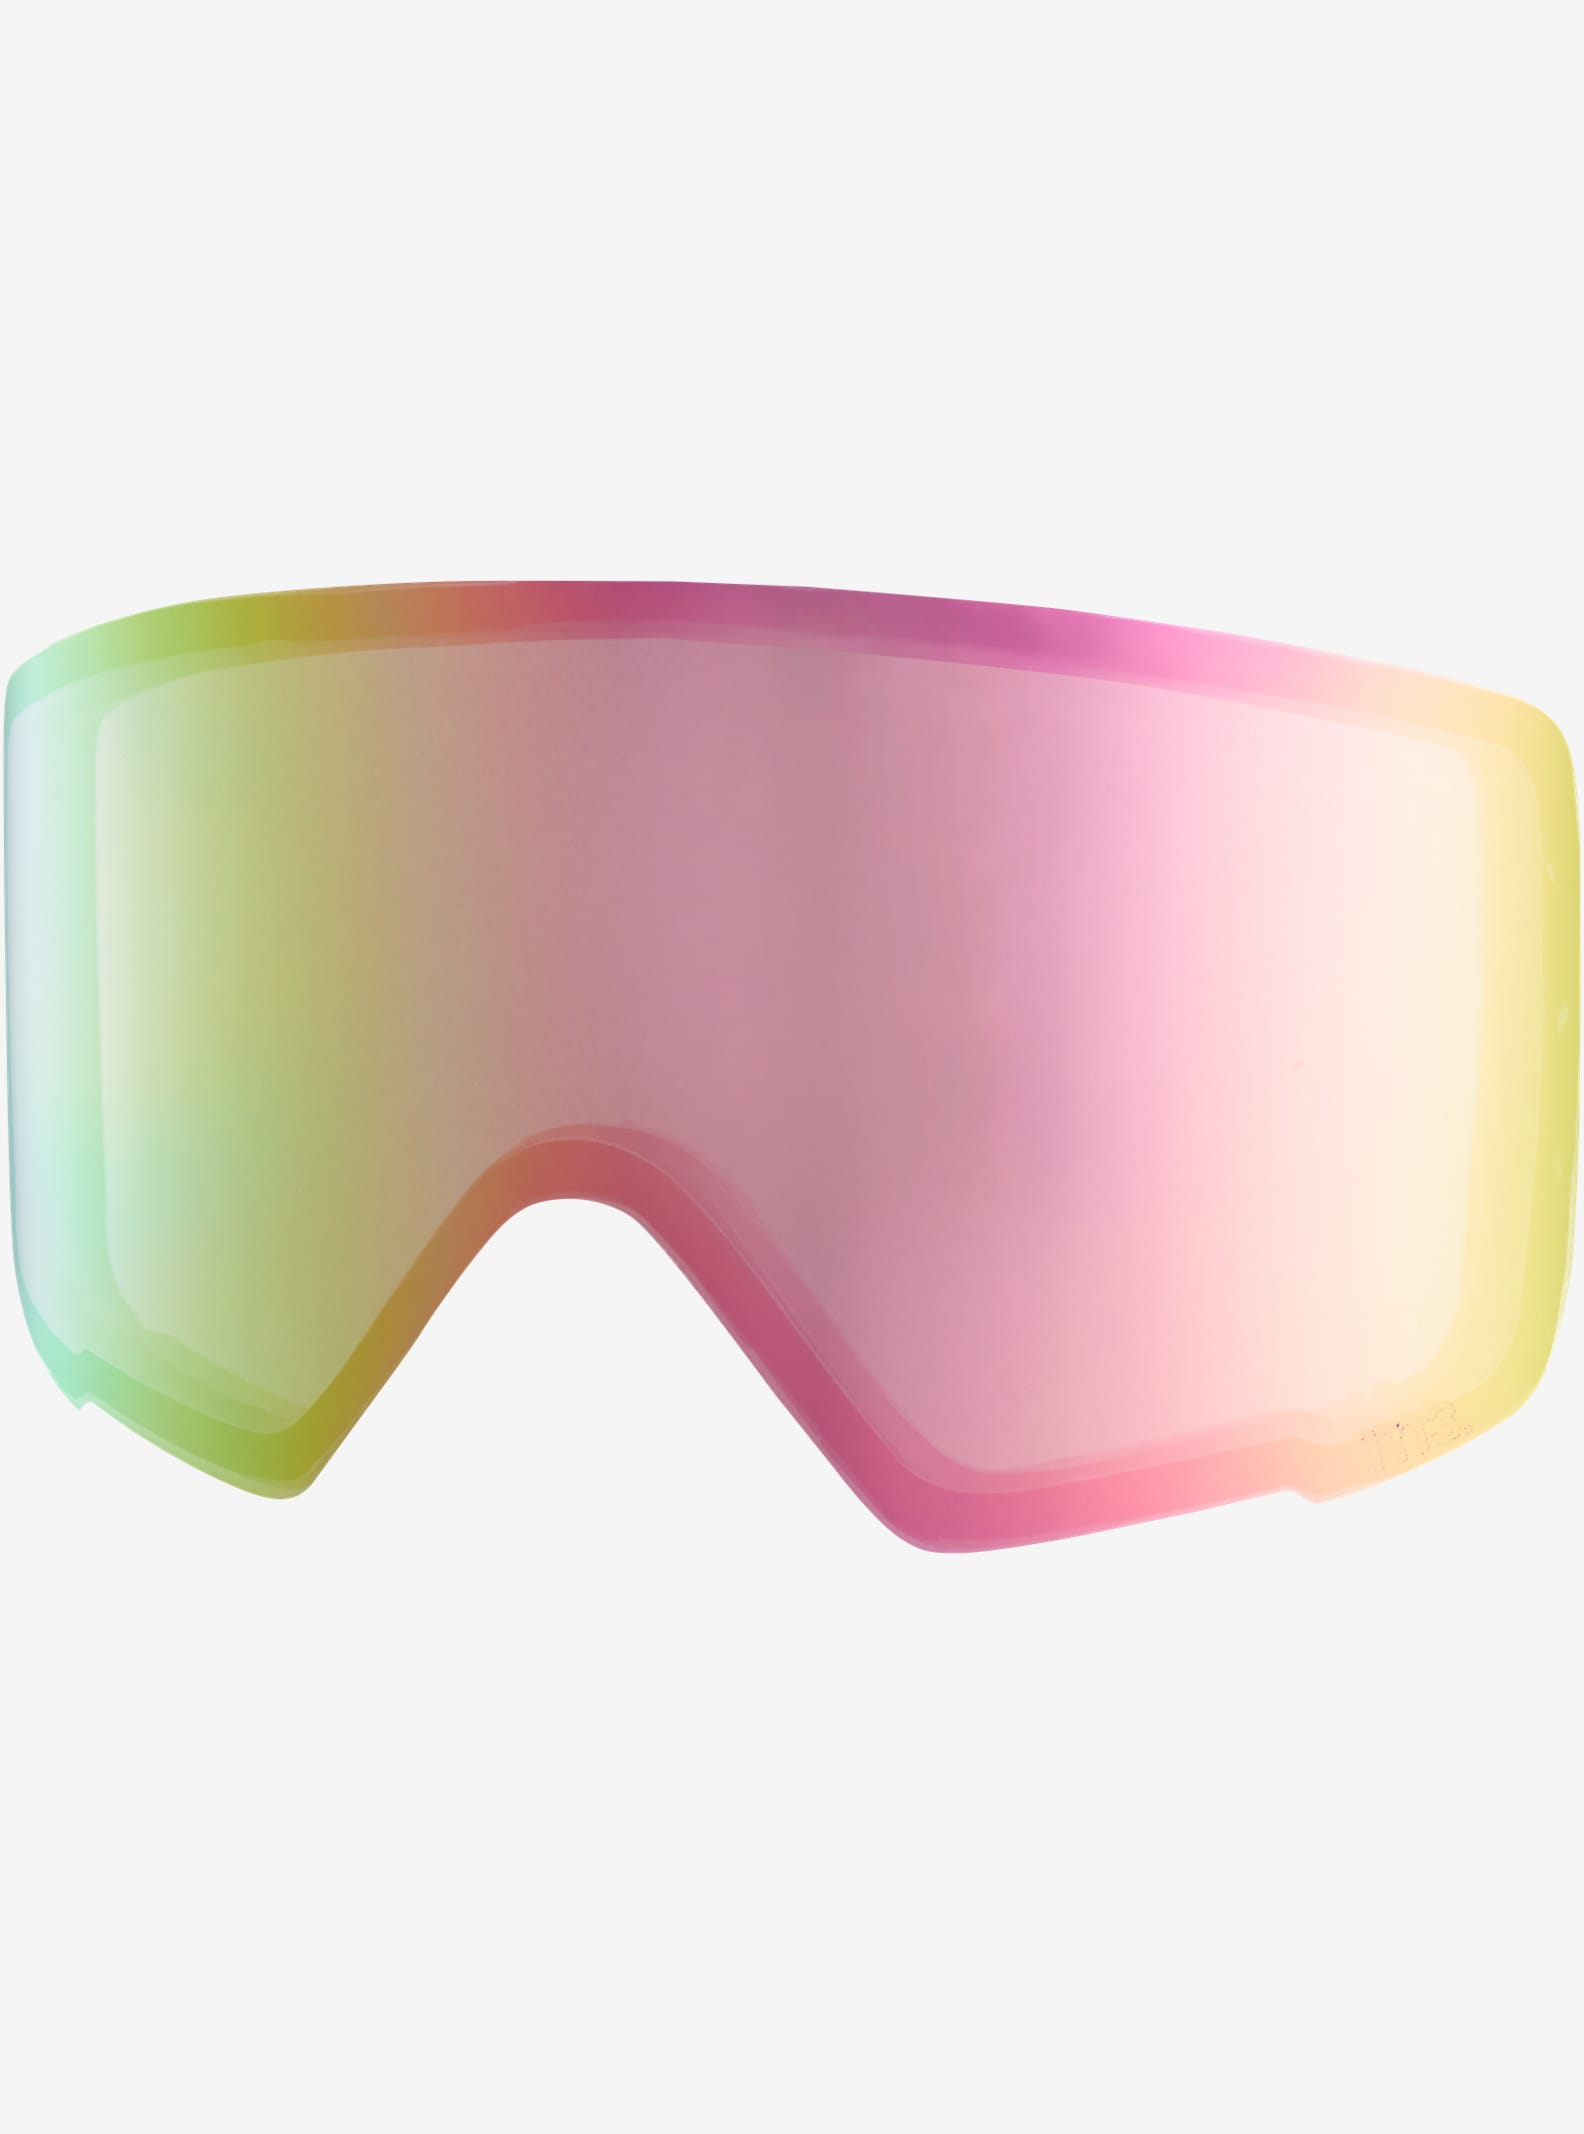 anon. M3 Goggle Lens shown in Pink Ice Japan (80% VLT)